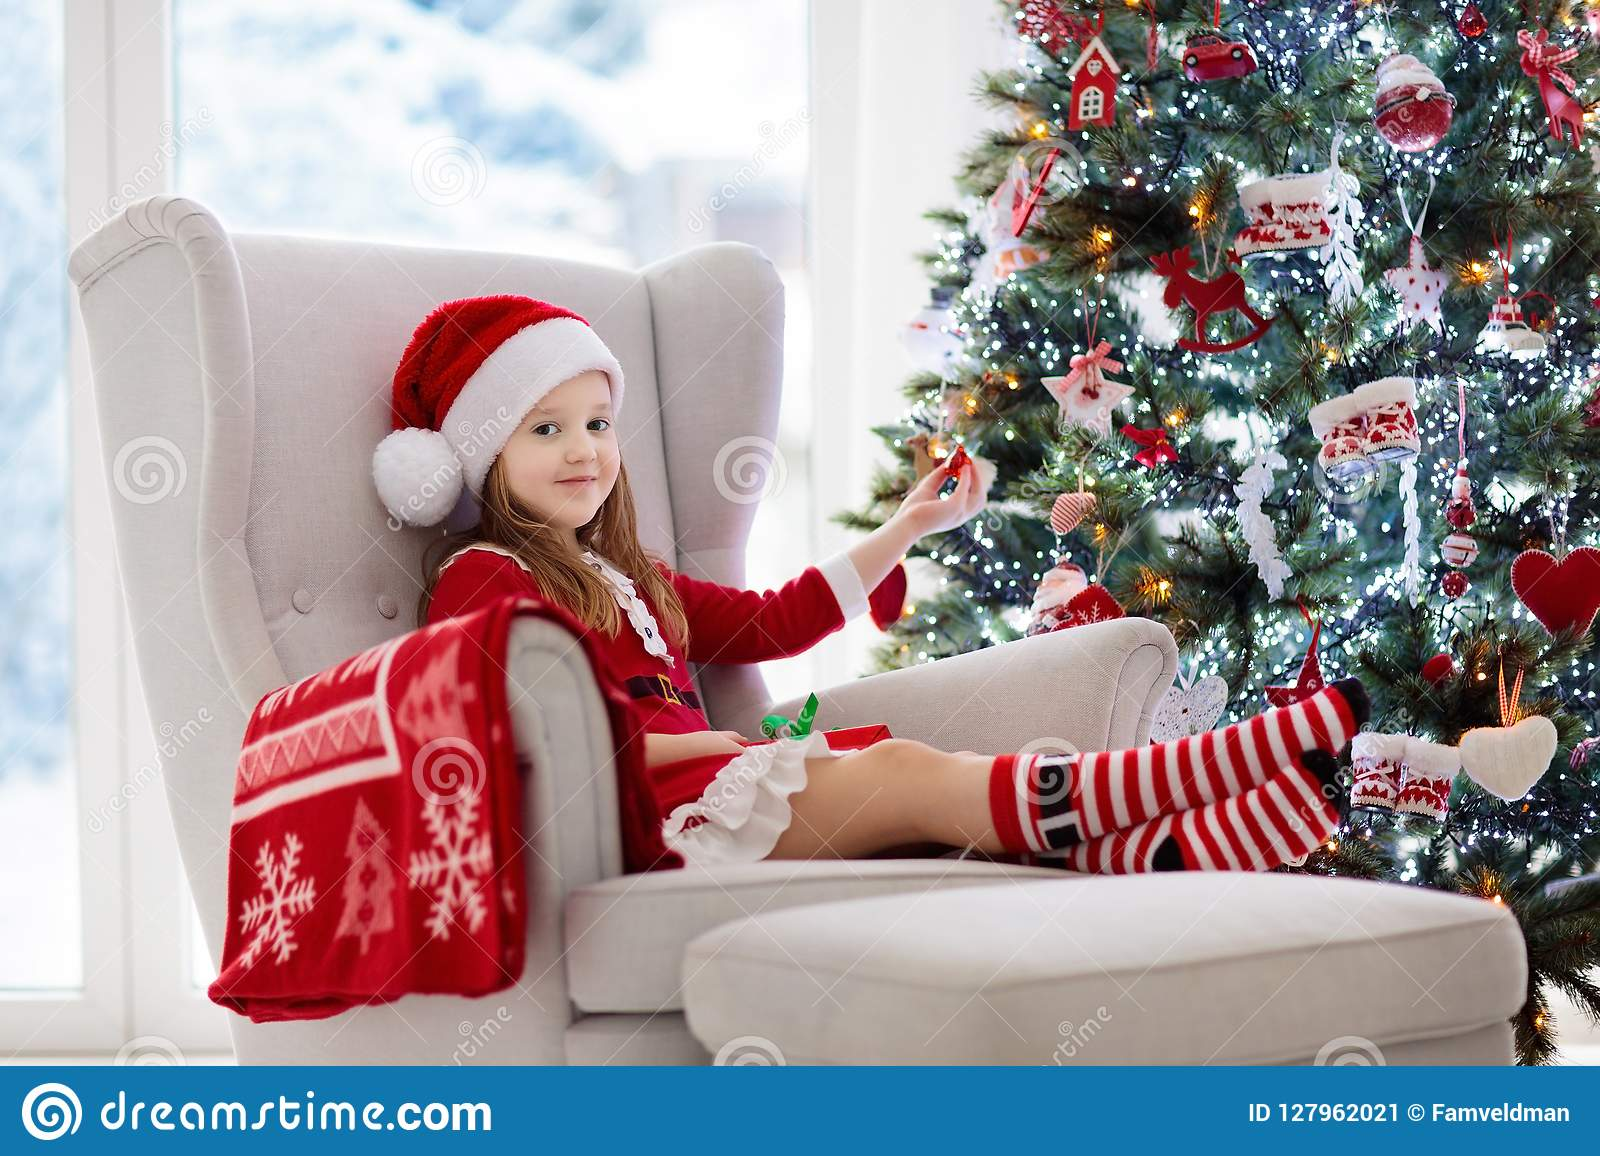 Kids At Christmas Tree. Children Open Presents Stock Image - Image ...